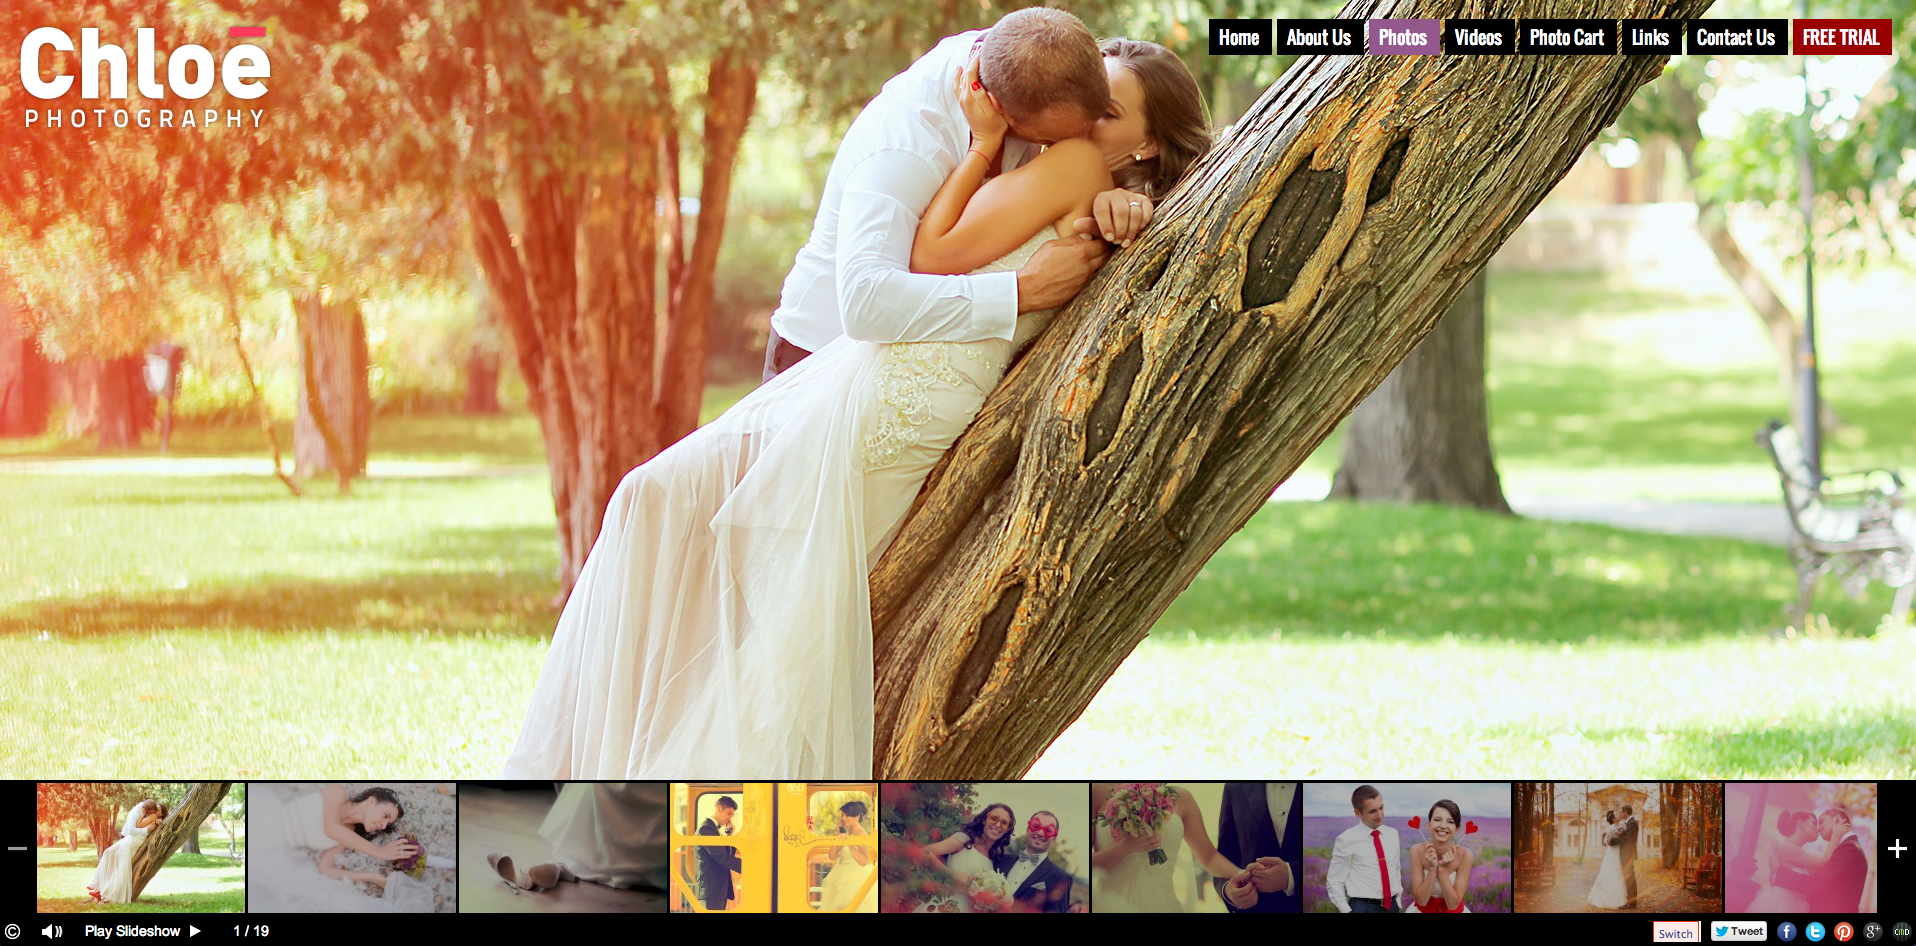 13 Creative Photography Websites Images